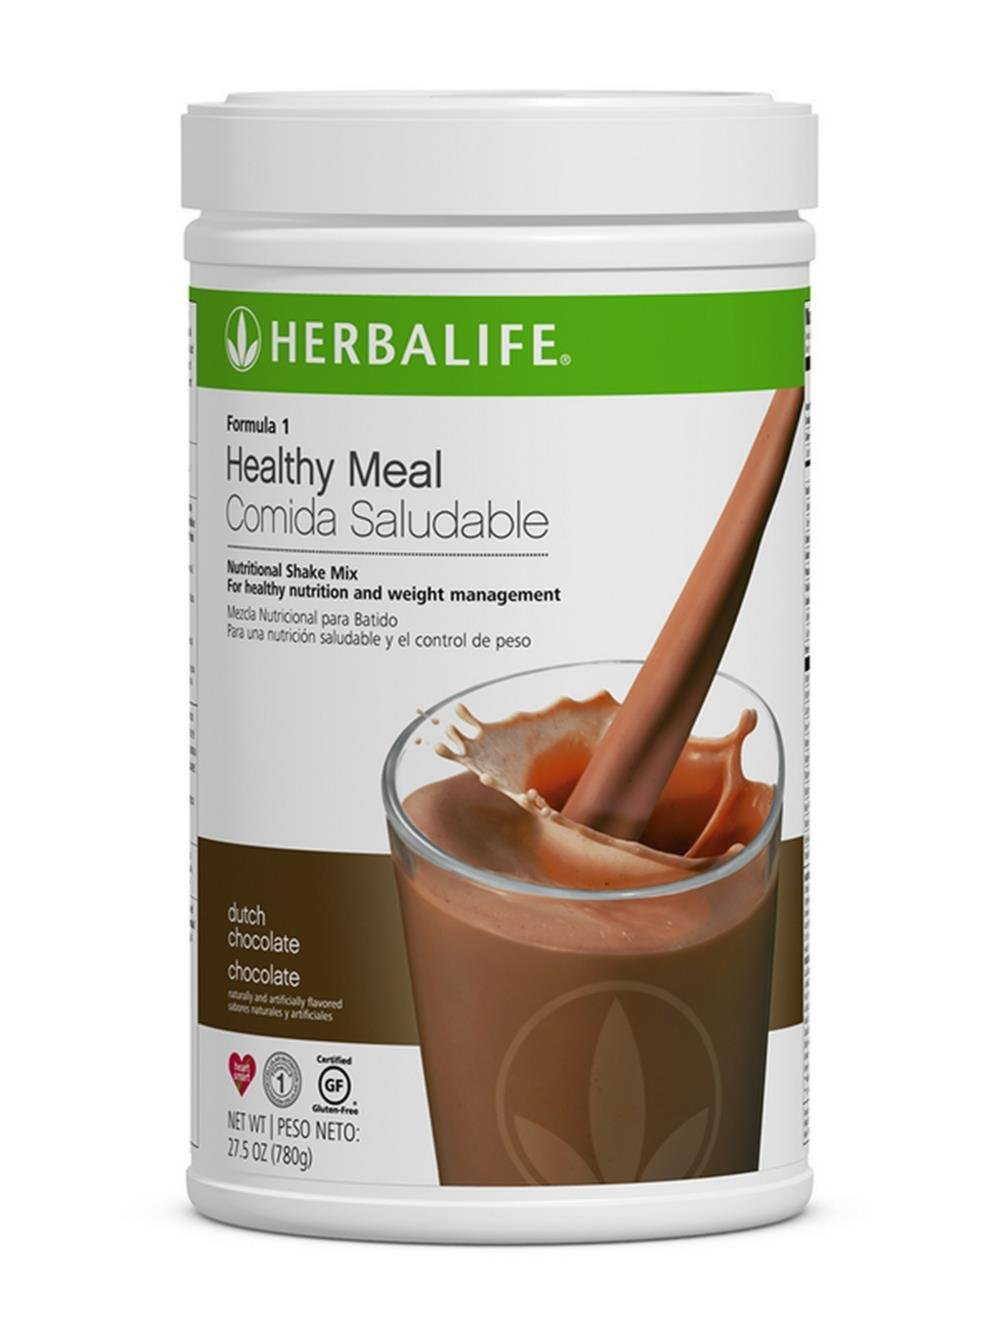 Herbalife Formula 1 Healthy Meal Nutritional Shake Mix 10 Flavor Dutch Chocolate